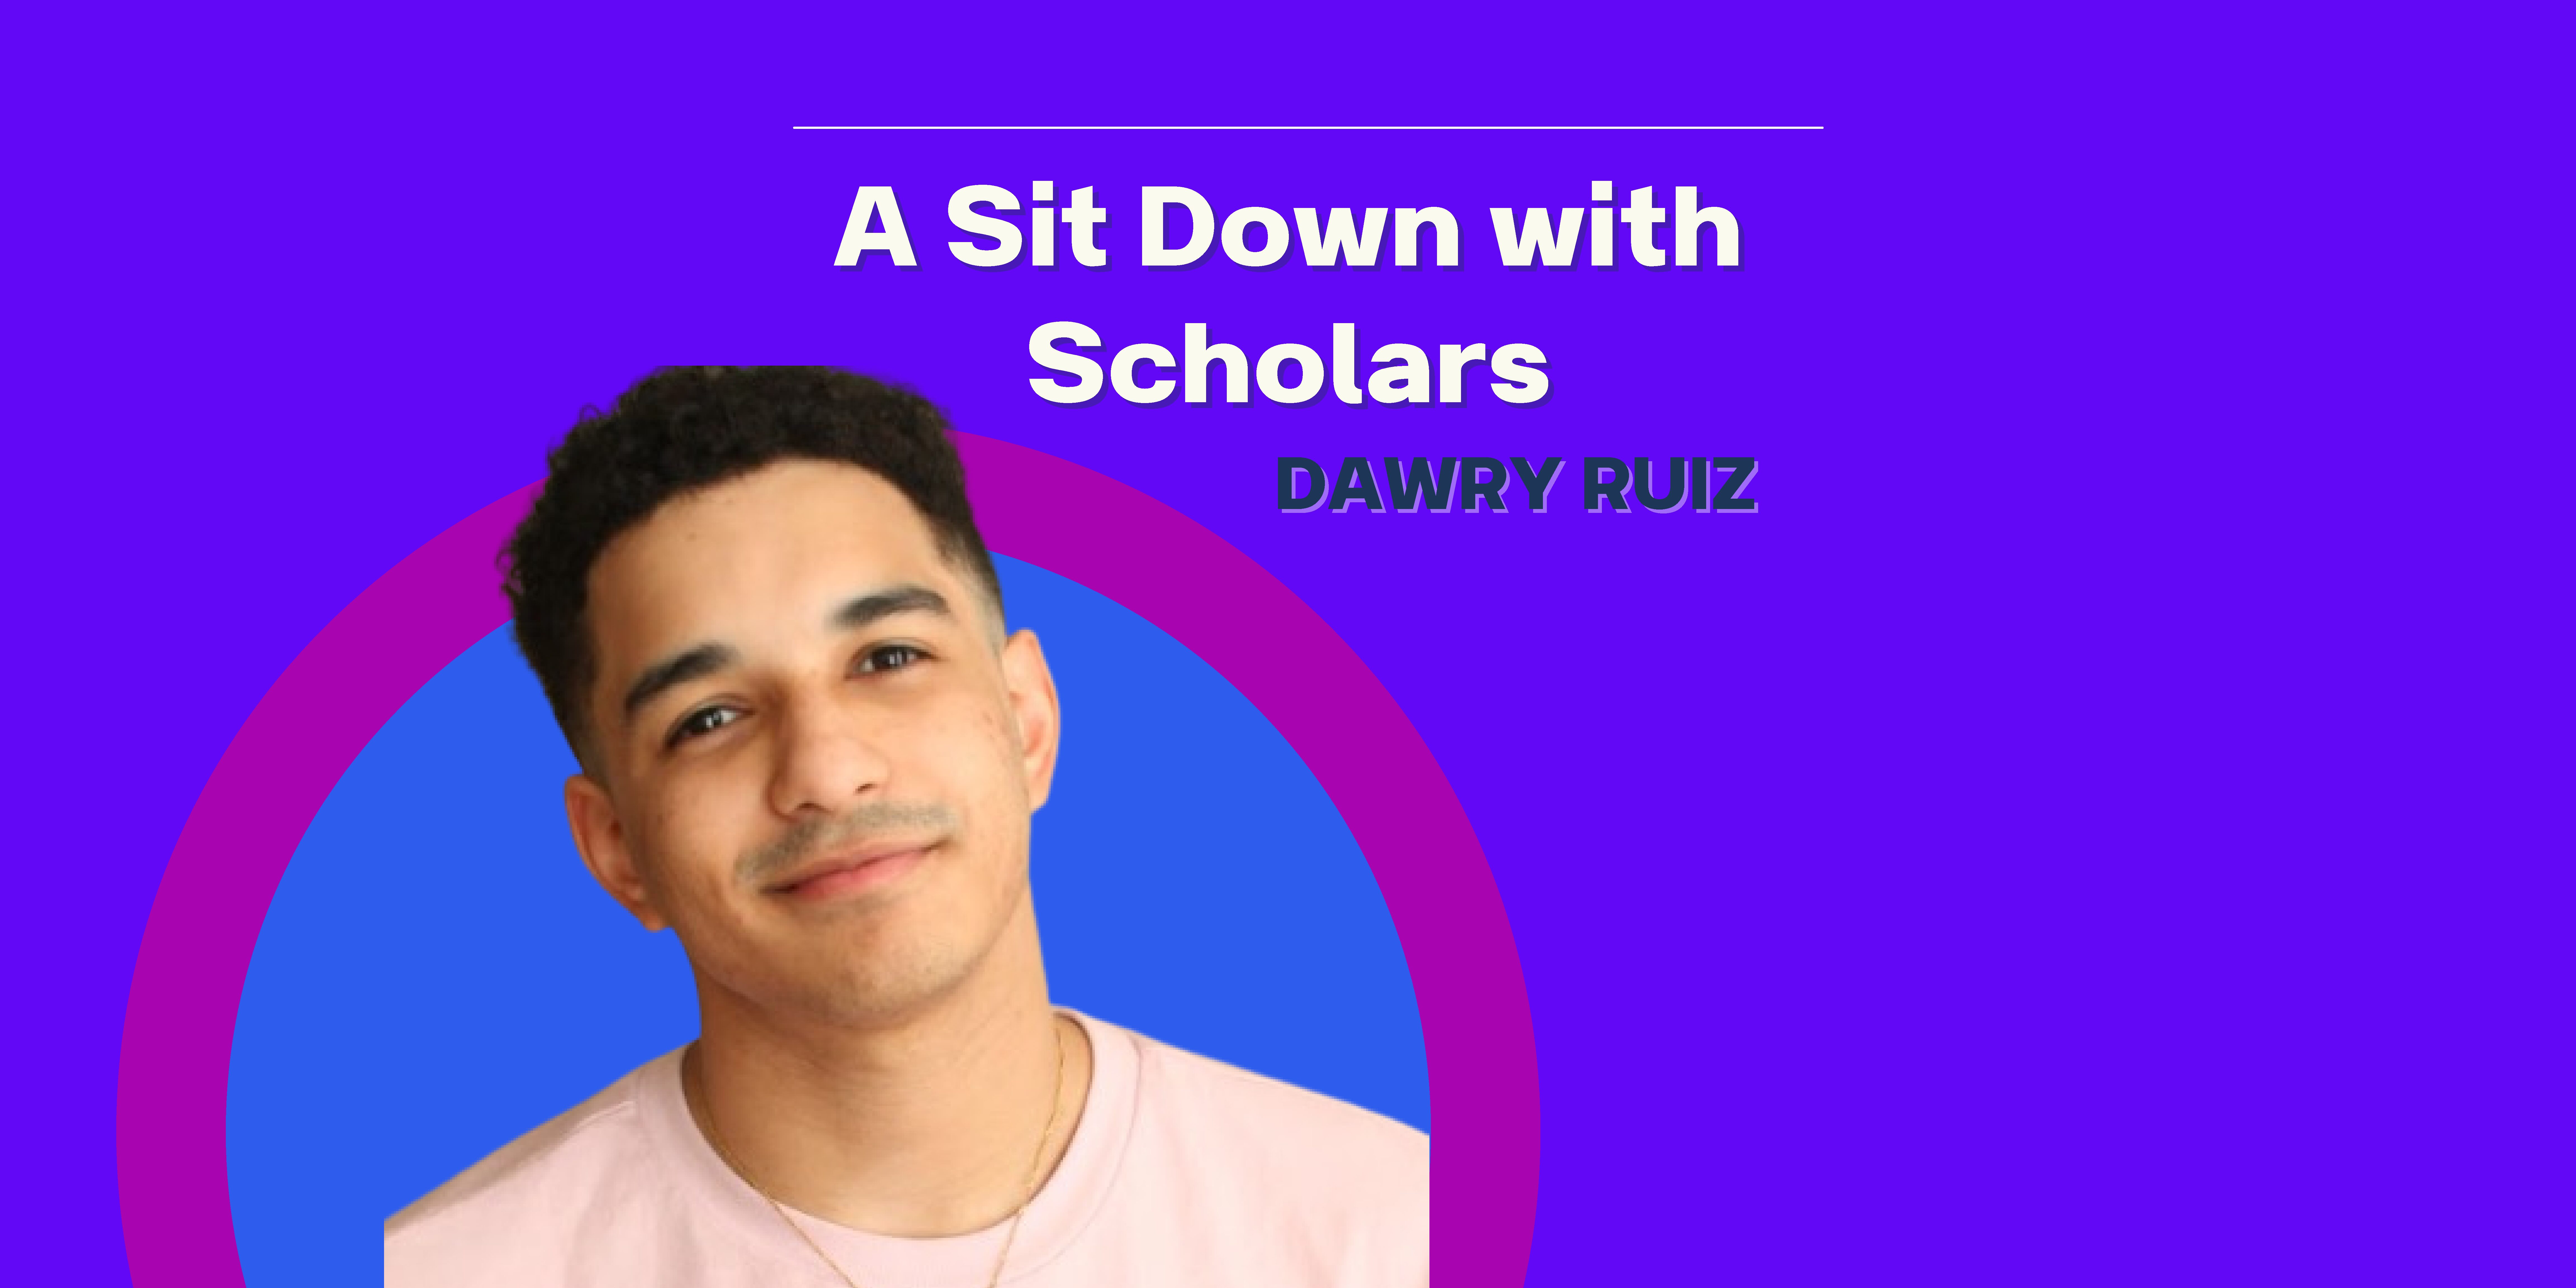 """A Sit Down with Scholars: Episode 5 """"A Sit Down with an Arts Administration Student"""""""